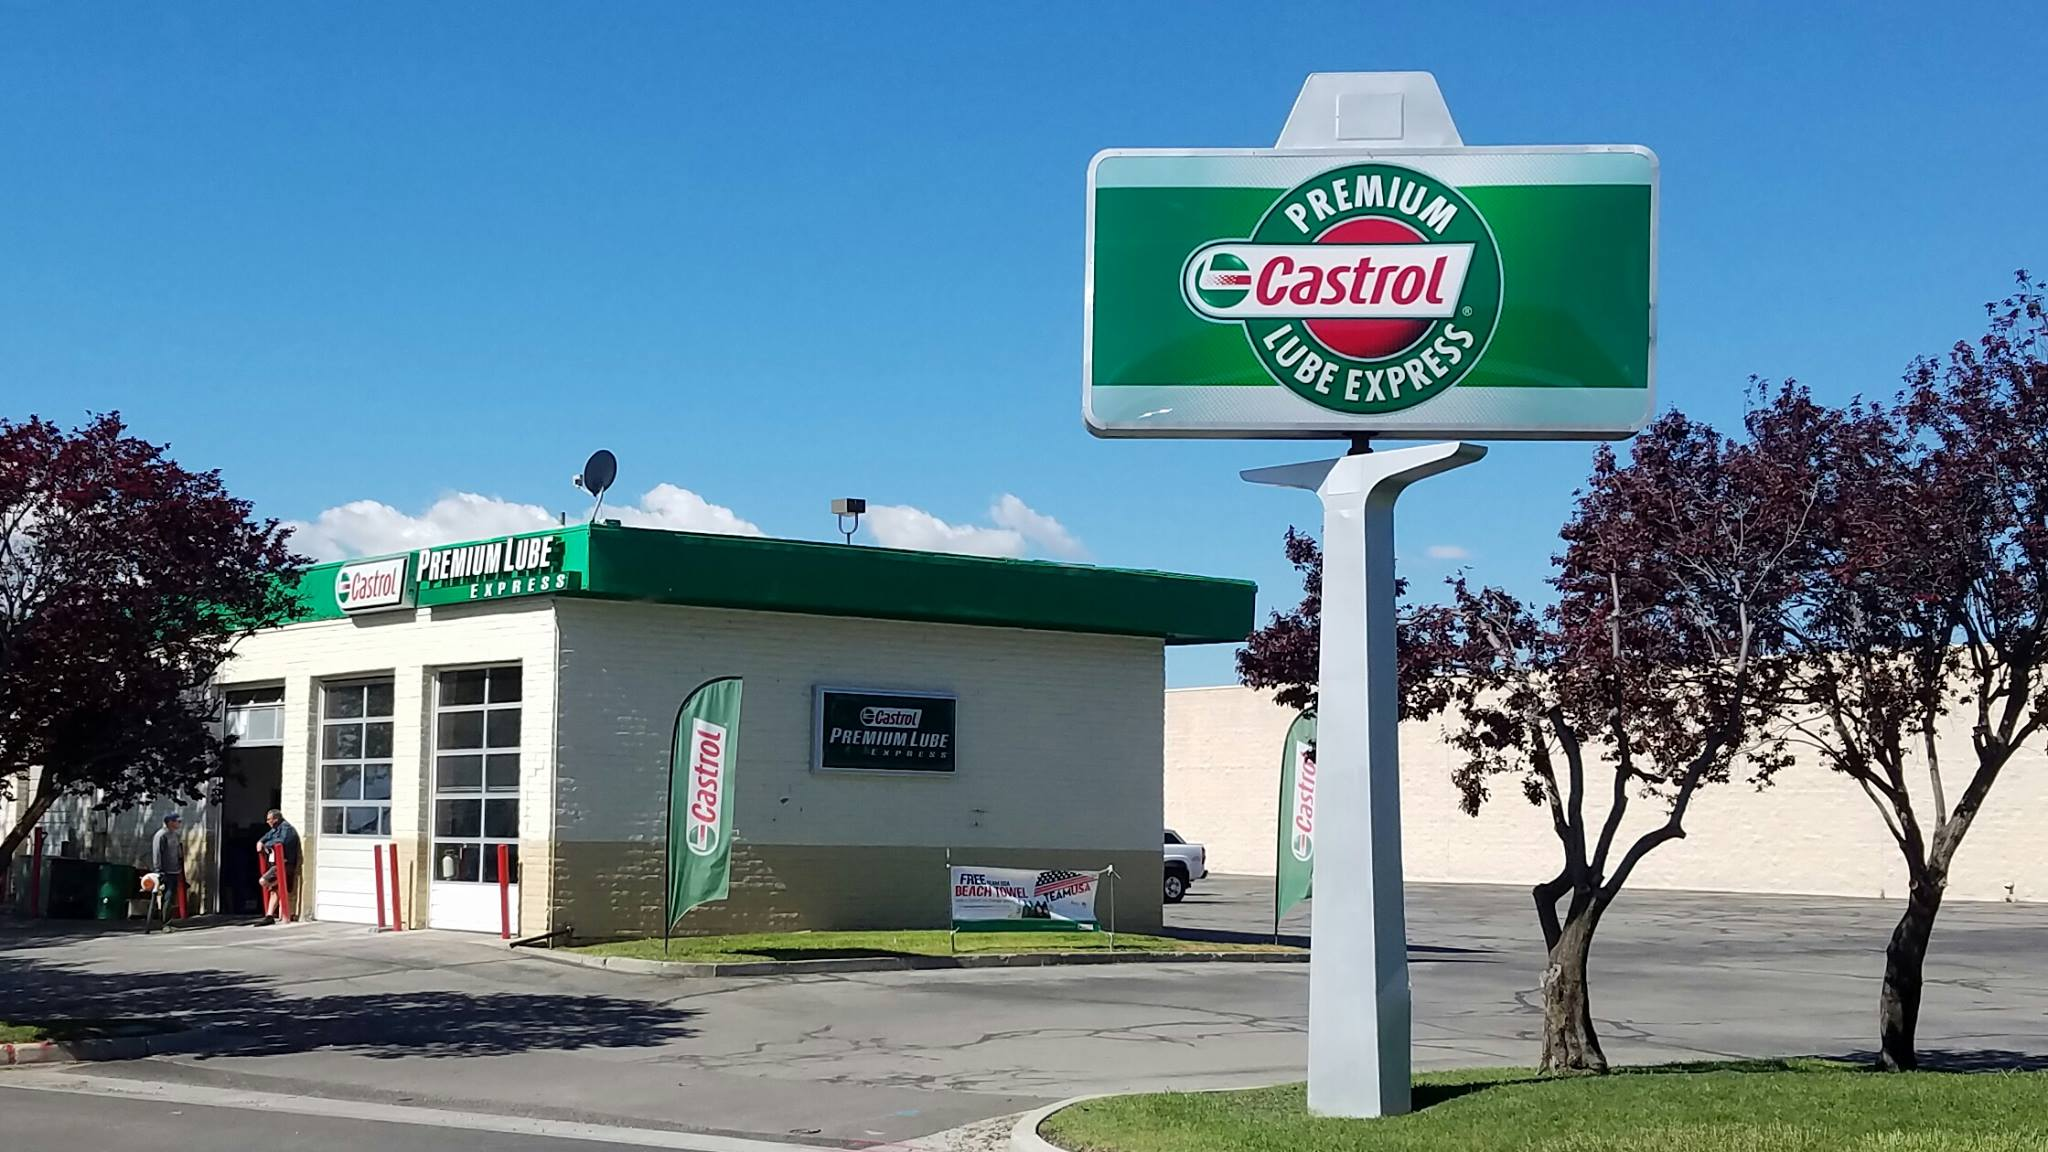 Castrol Oil Change >> Castrol Premium Lube Express Oil Change And Services Grease N Go